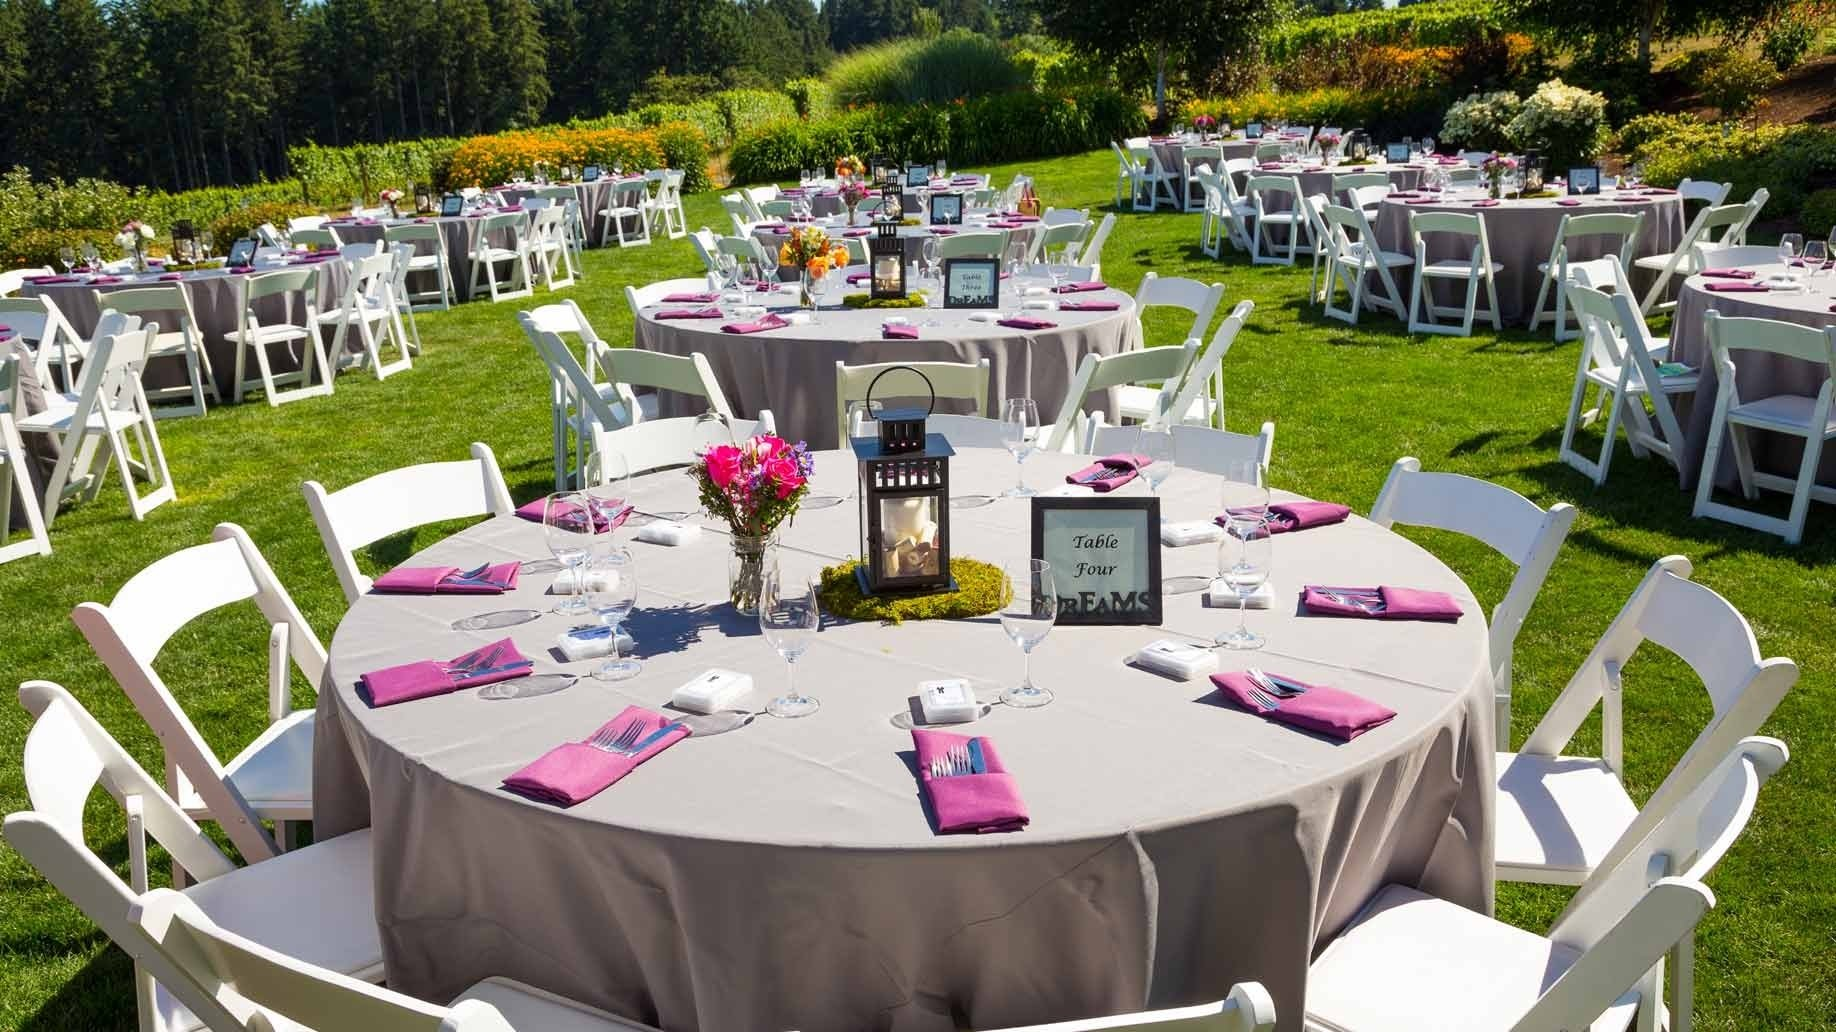 10 Fantastic Small Backyard Wedding Ideas On A Budget 16 cheap budget wedding venue ideas for the ceremony reception 2